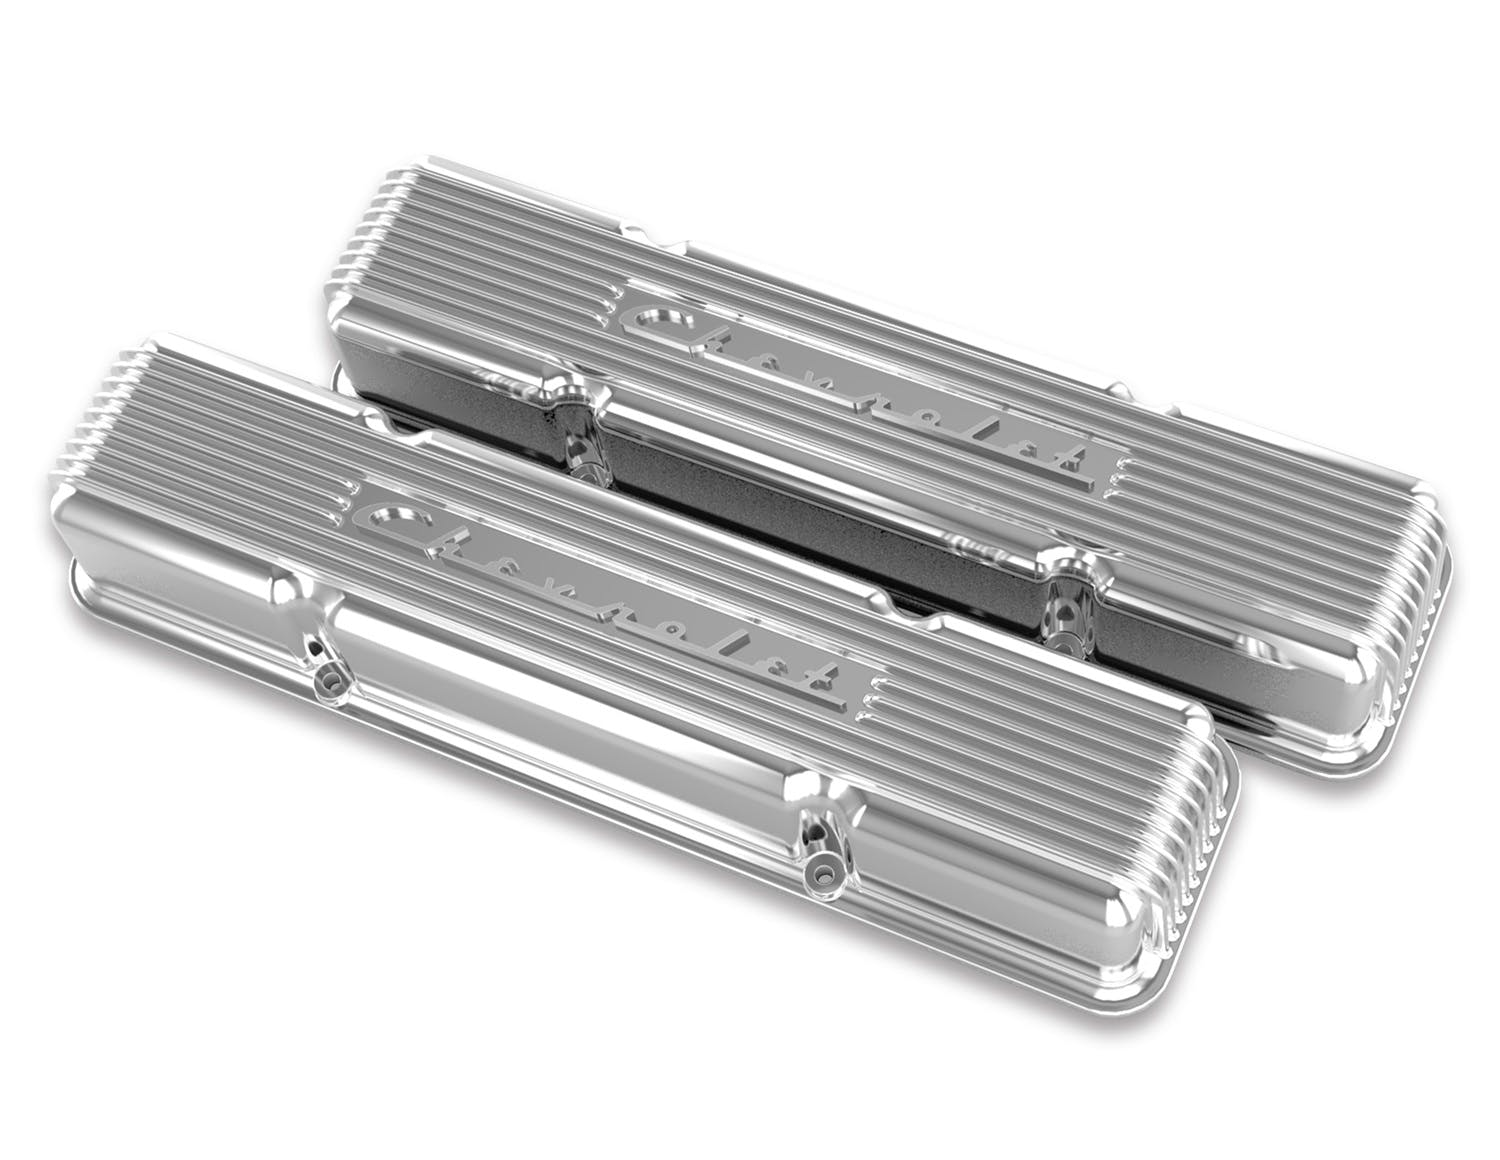 Holley Valve Covers Set of 2 New Polished for Chevy Chevrolet 241-111